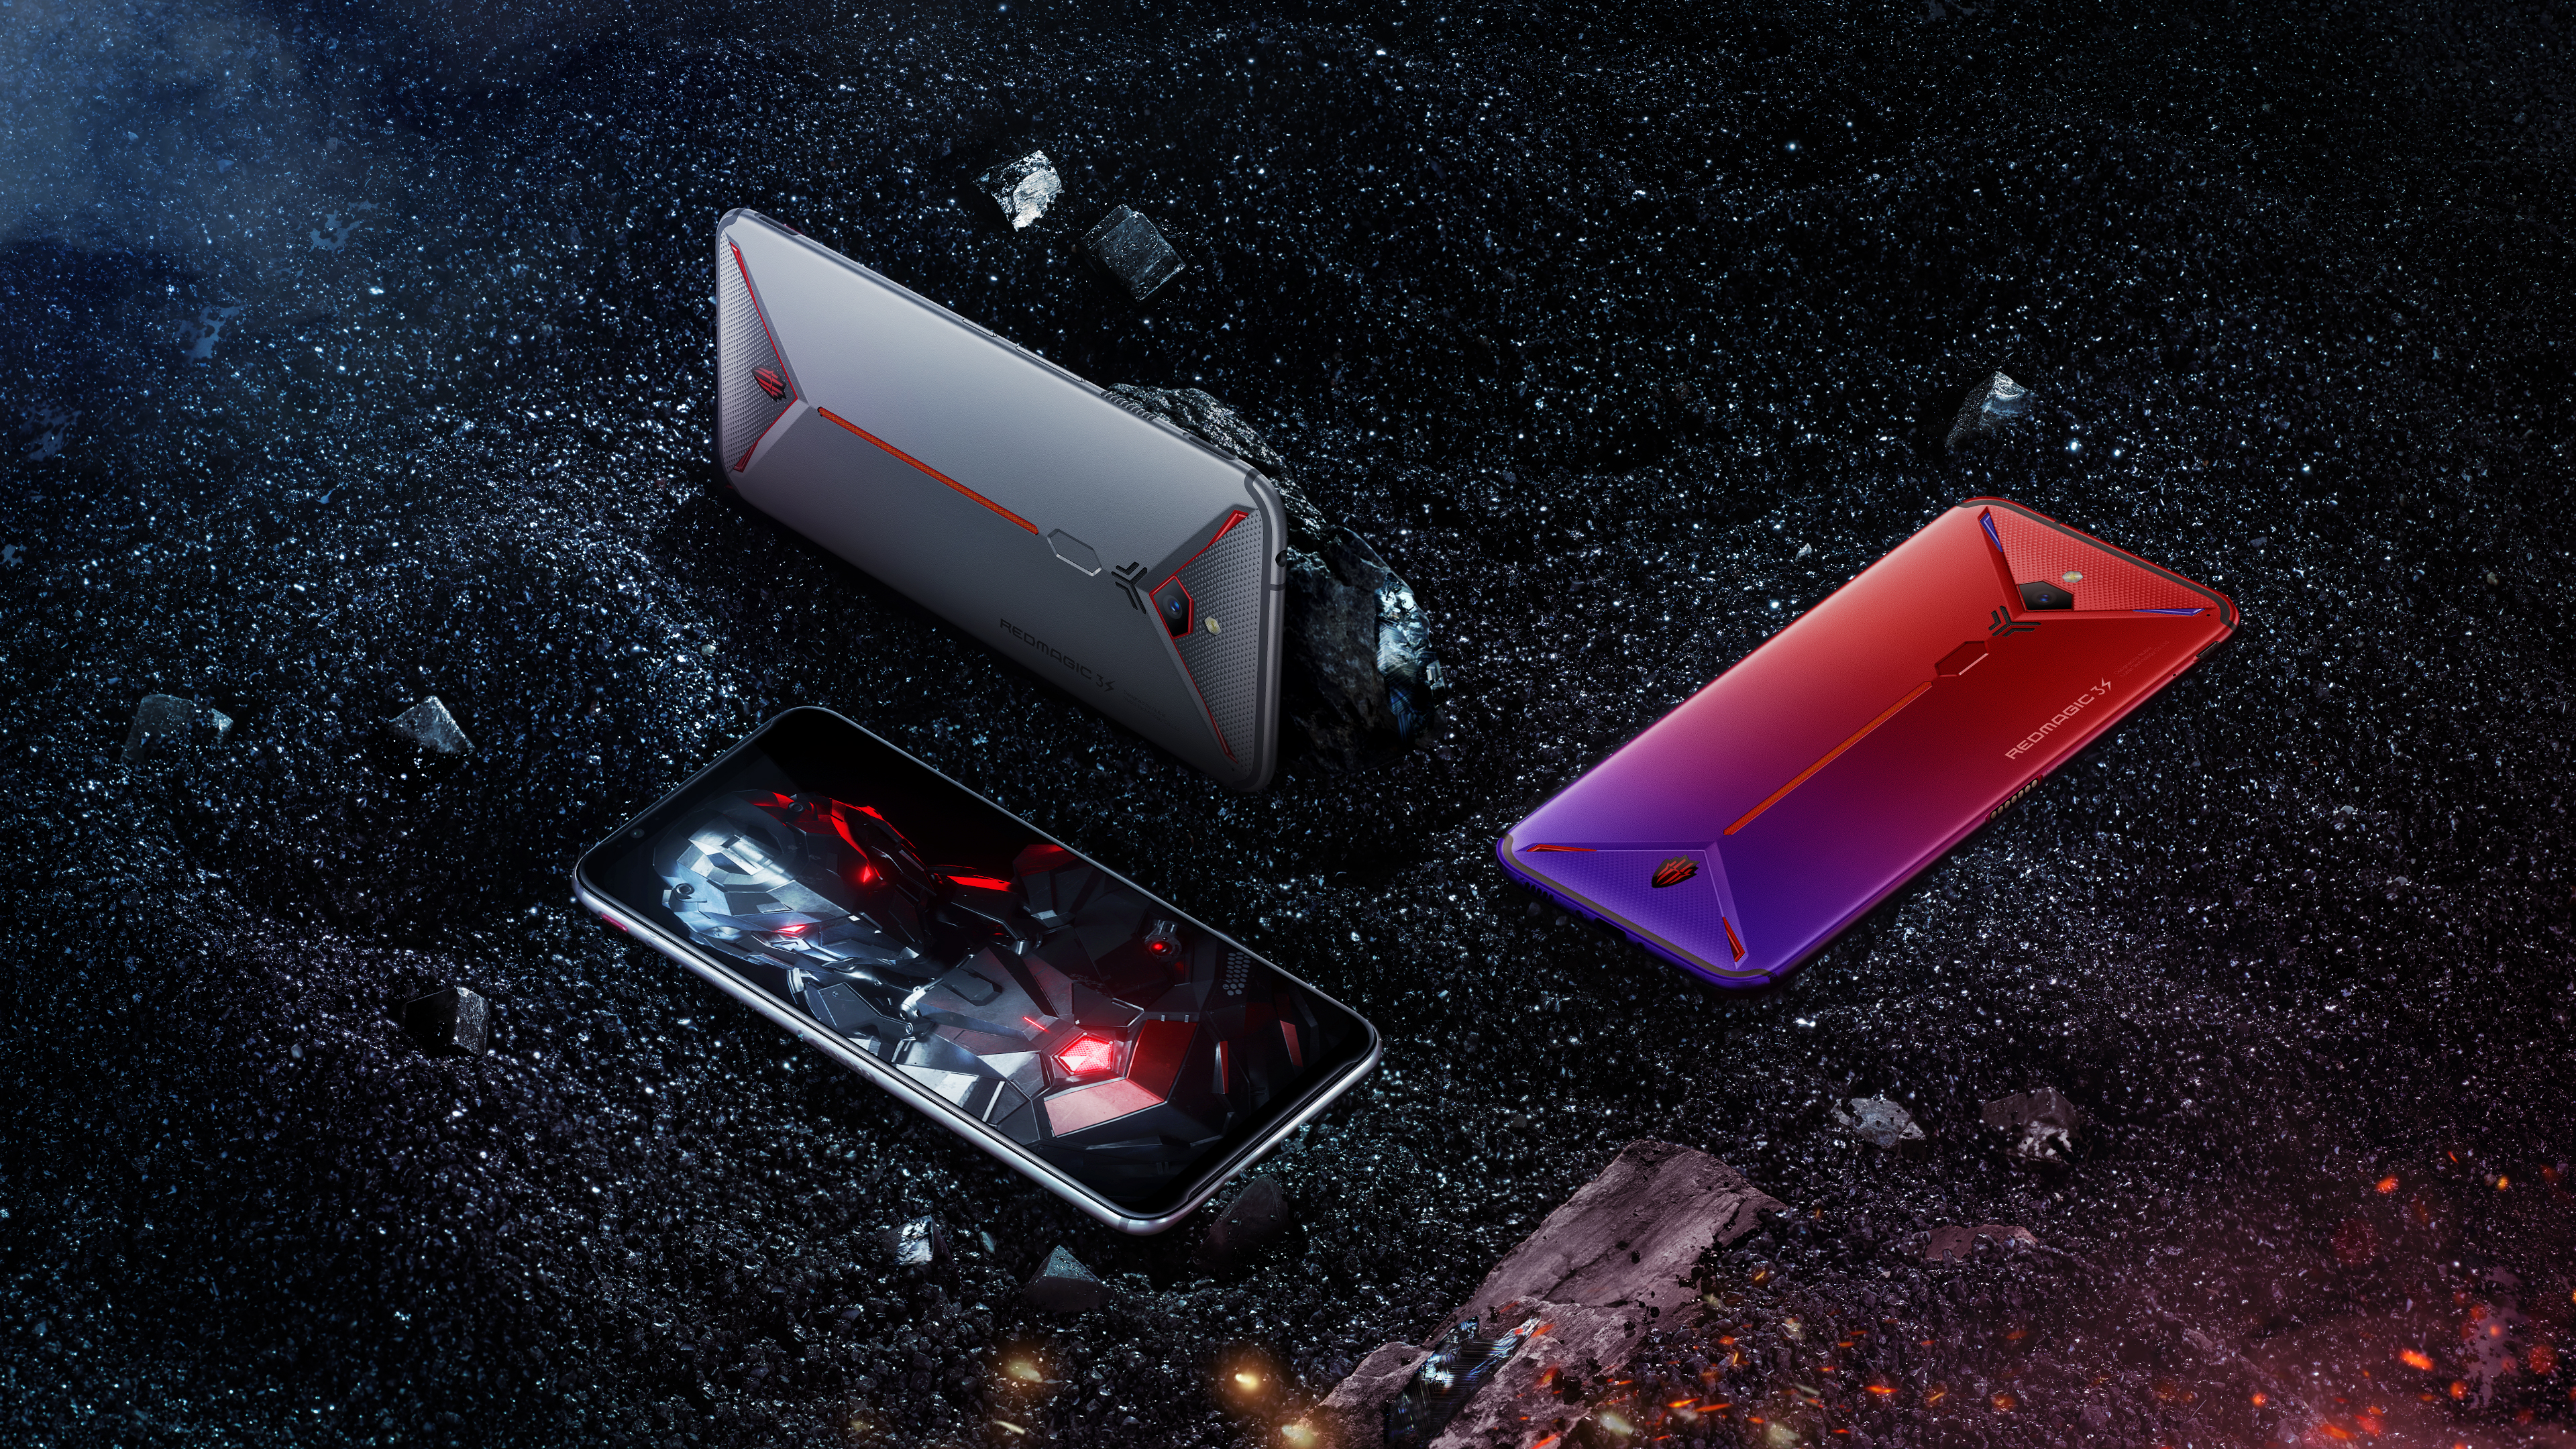 [Update: Global launch] Nubia reveals slightly improved Red Magic 3S with new Snapdragon 855 Plus